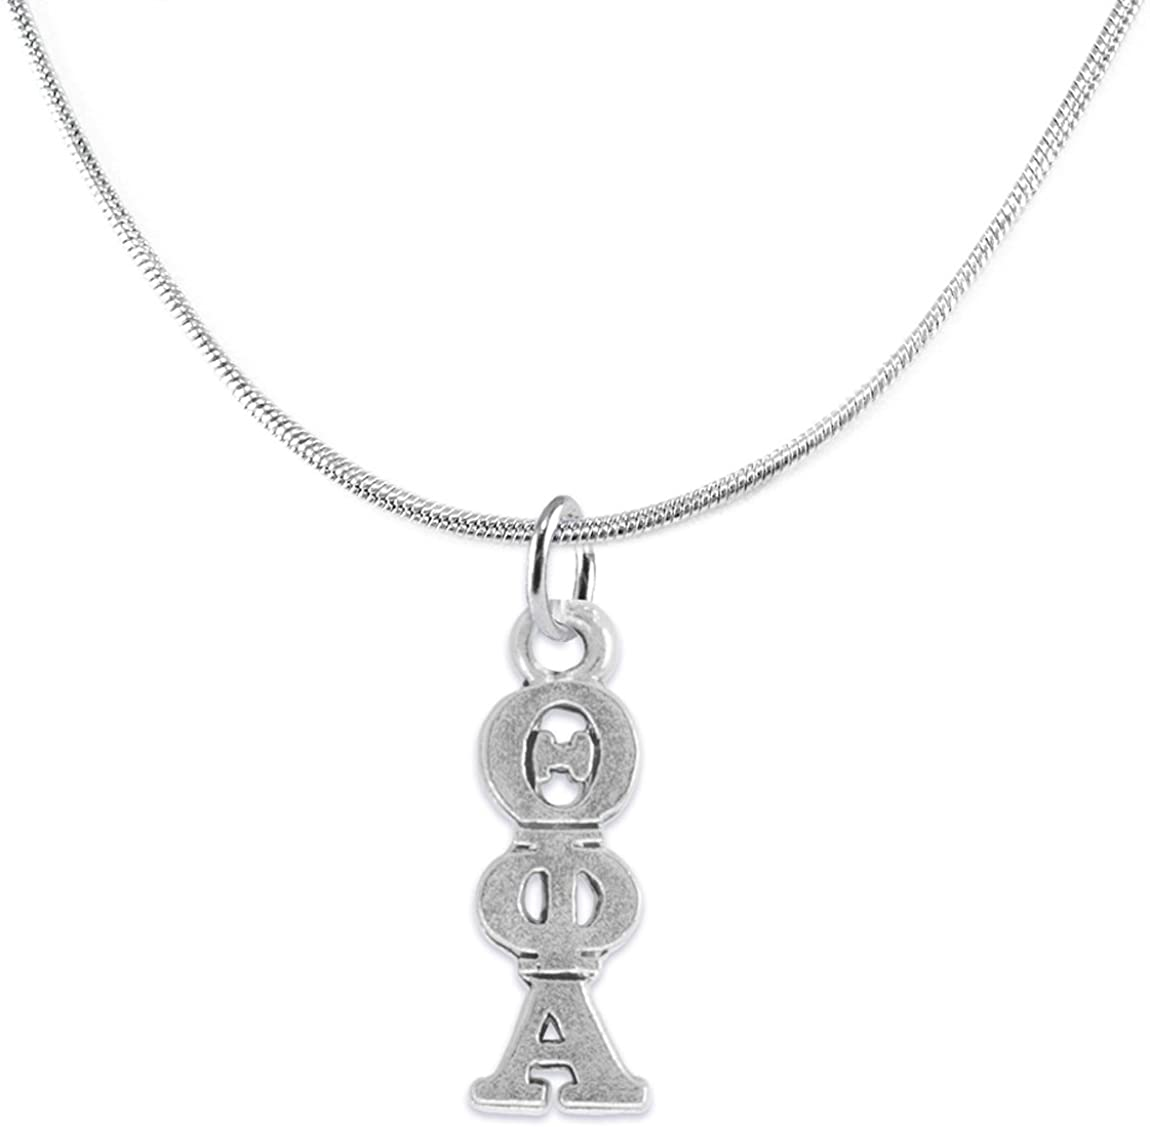 Theta Phi Alpha-Licensed Sorority Jewelry Manufacturer, Adjustable, Snake Chain, Hypoallergenic Safe Necklace-No Nickel, No Lead, And No Poisonous Cadmium